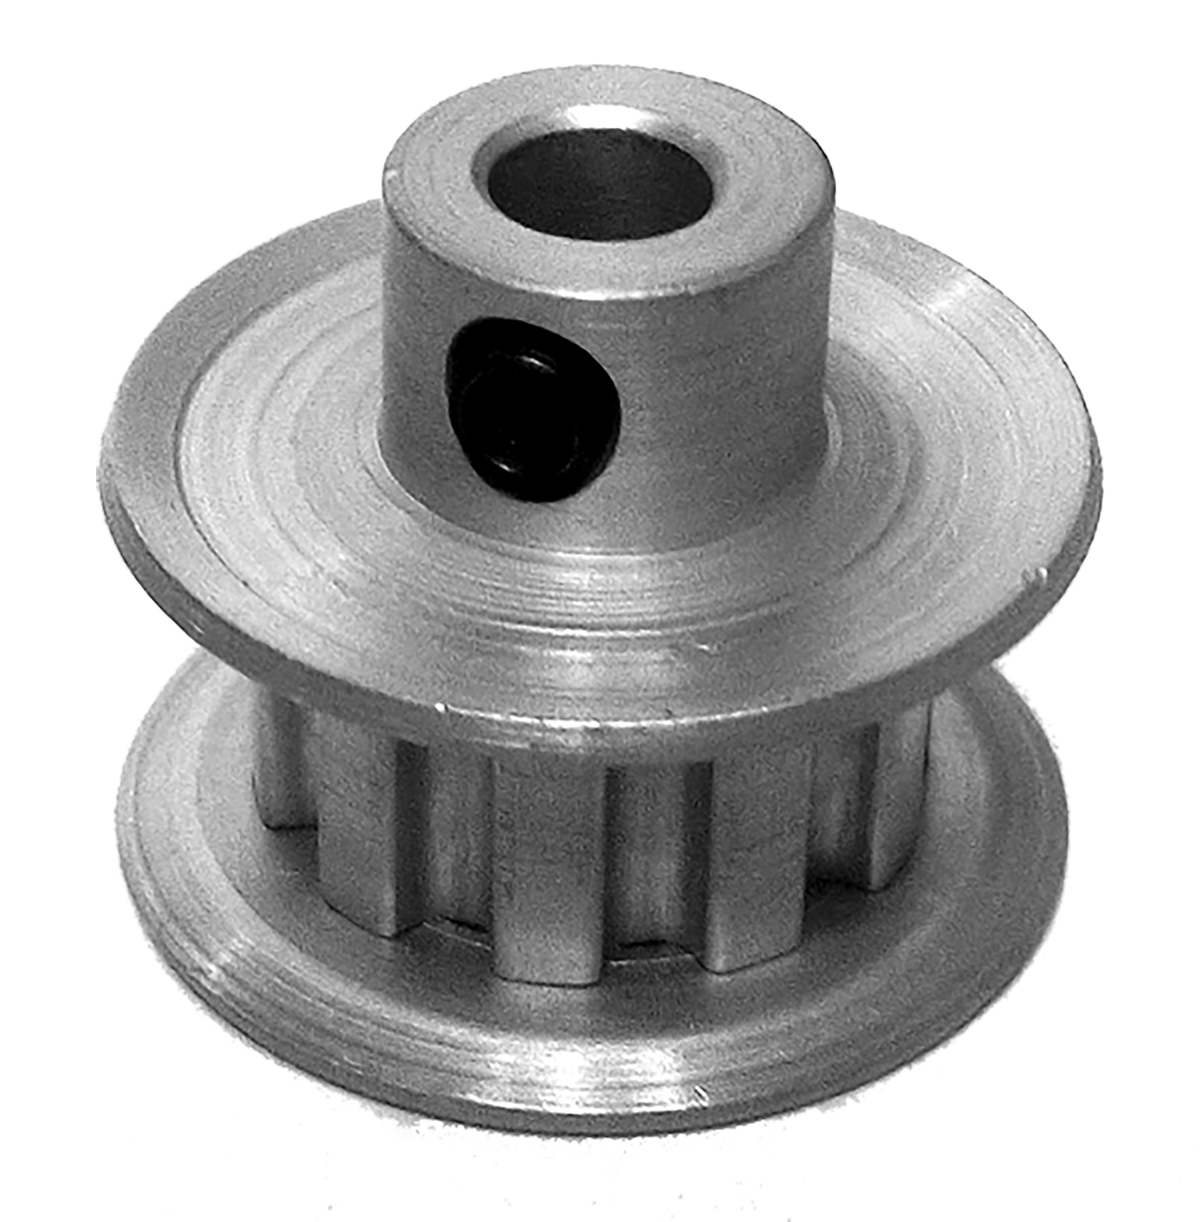 10XL025-6FA2 - Aluminum Imperial Pitch Pulleys